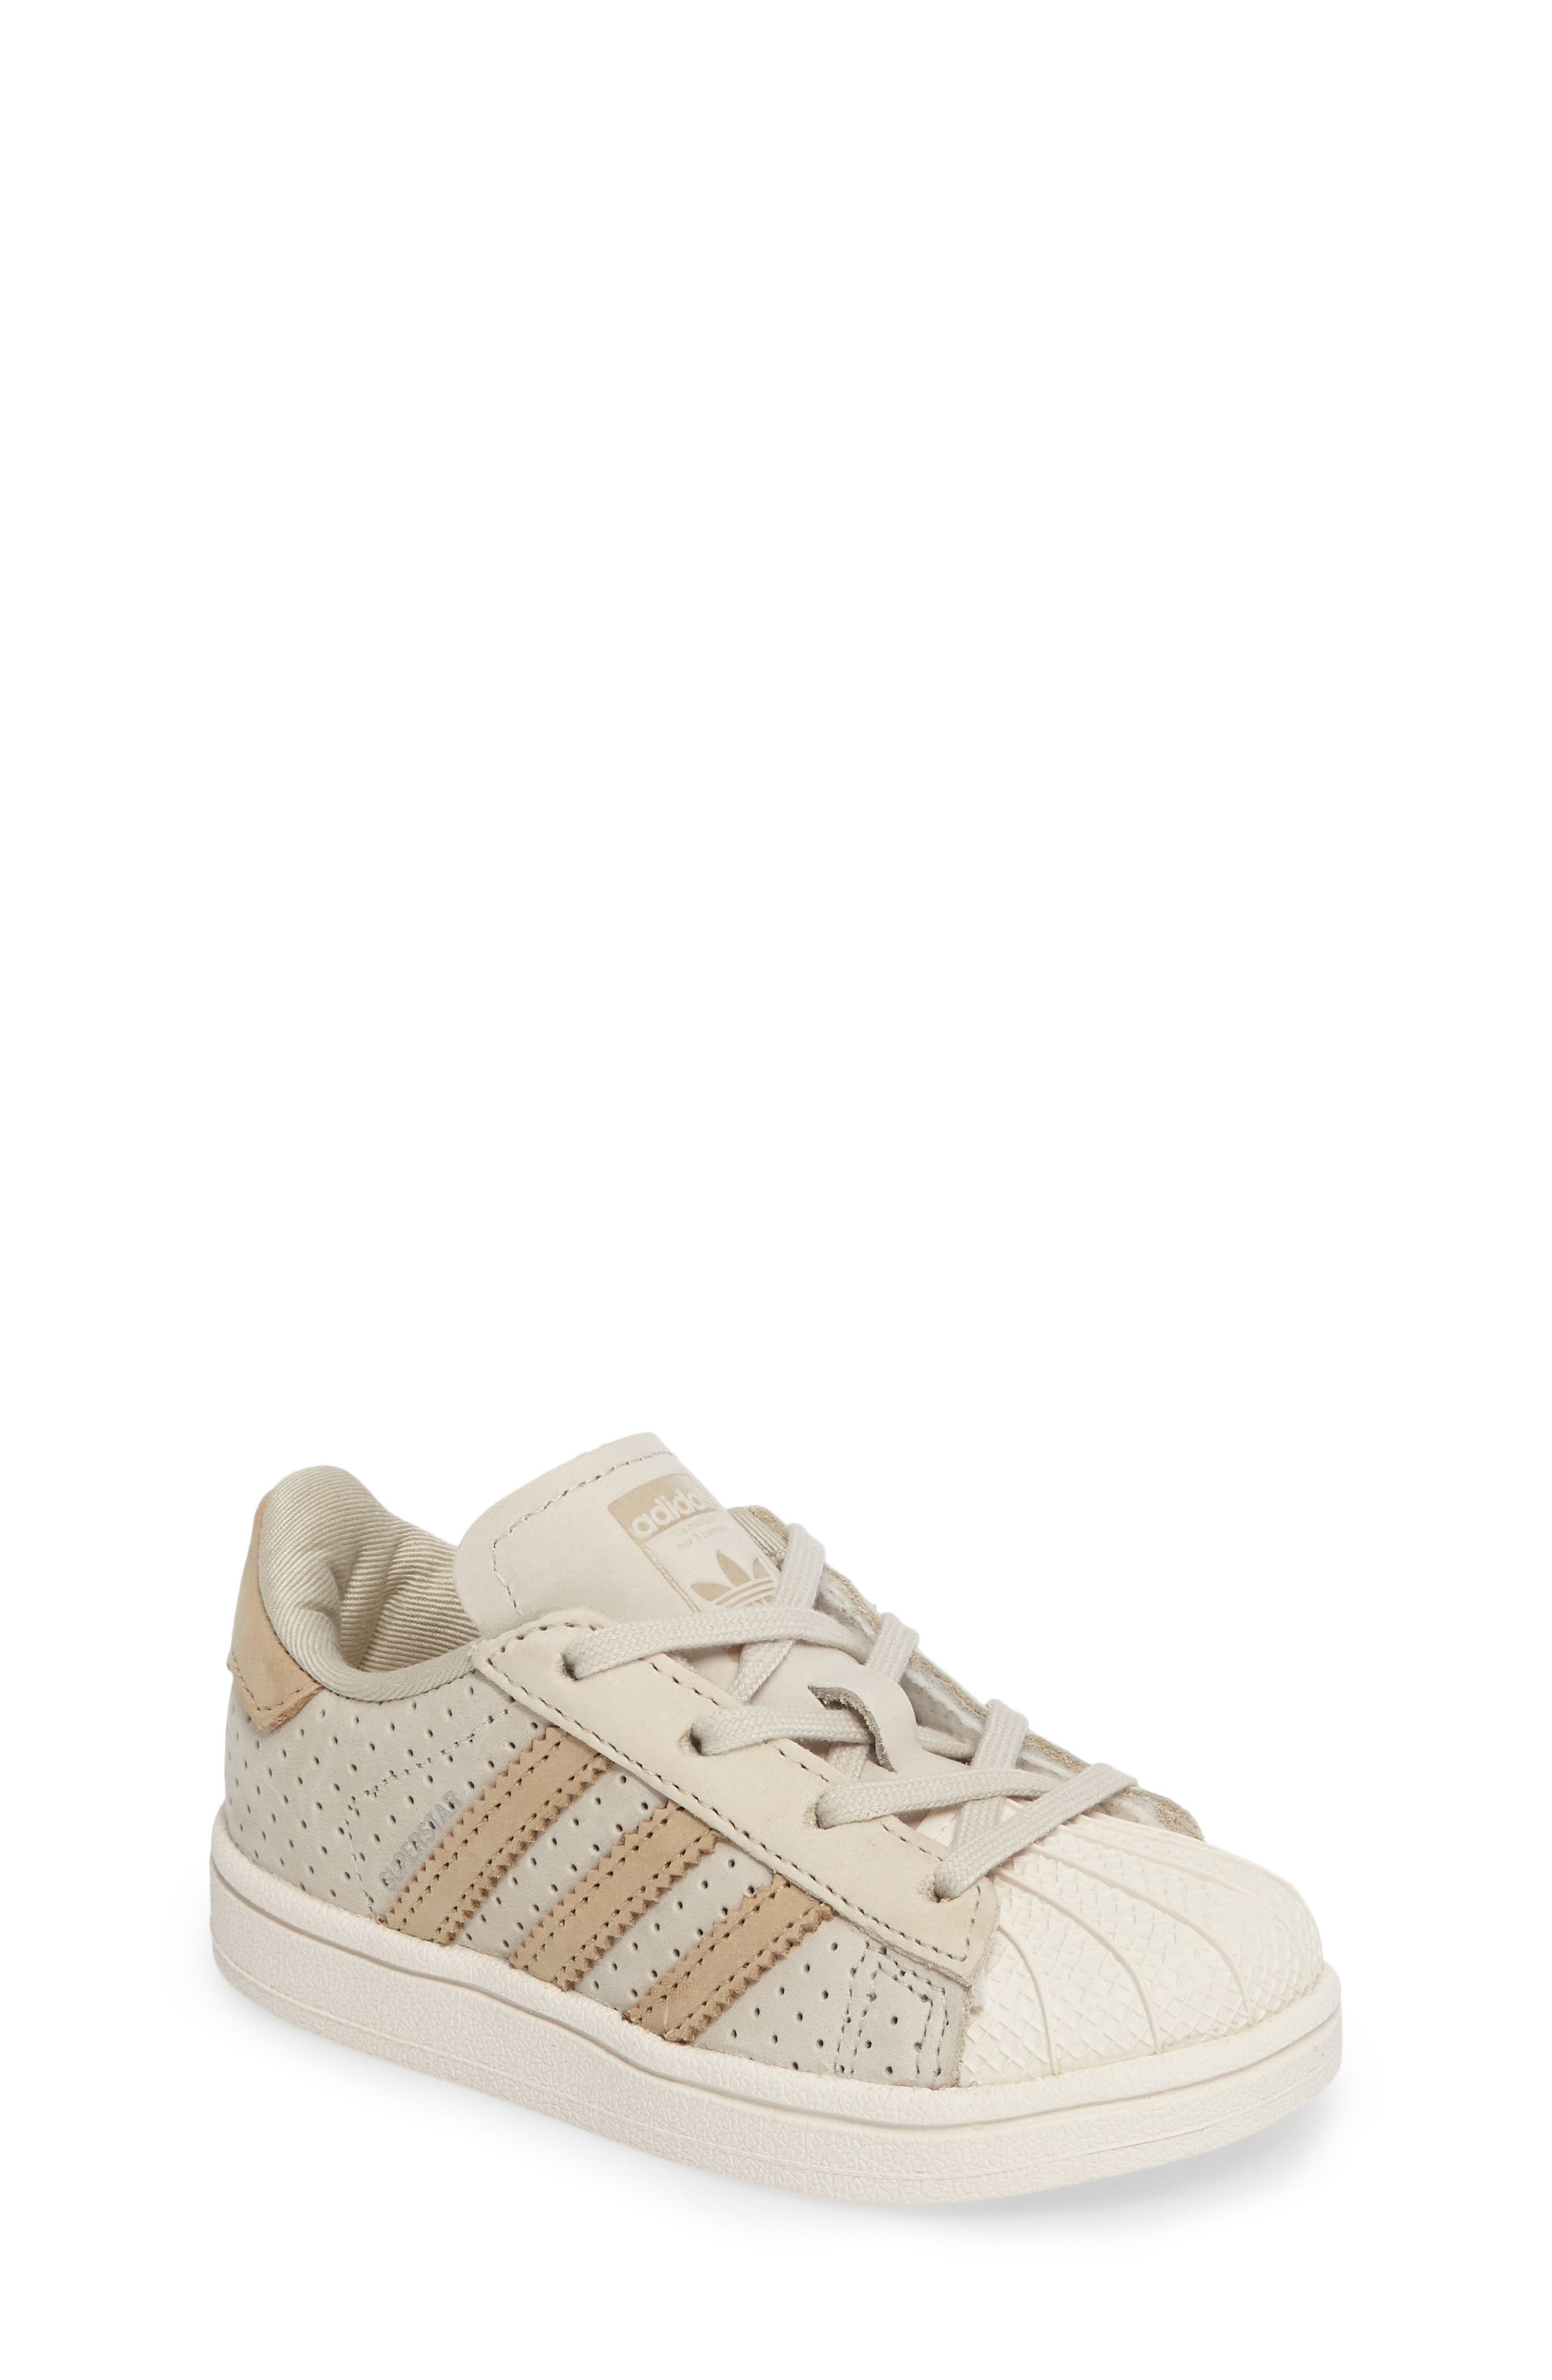 Stan Smith Fashion I Perforated Sneaker,                             Main thumbnail 1, color,                             200